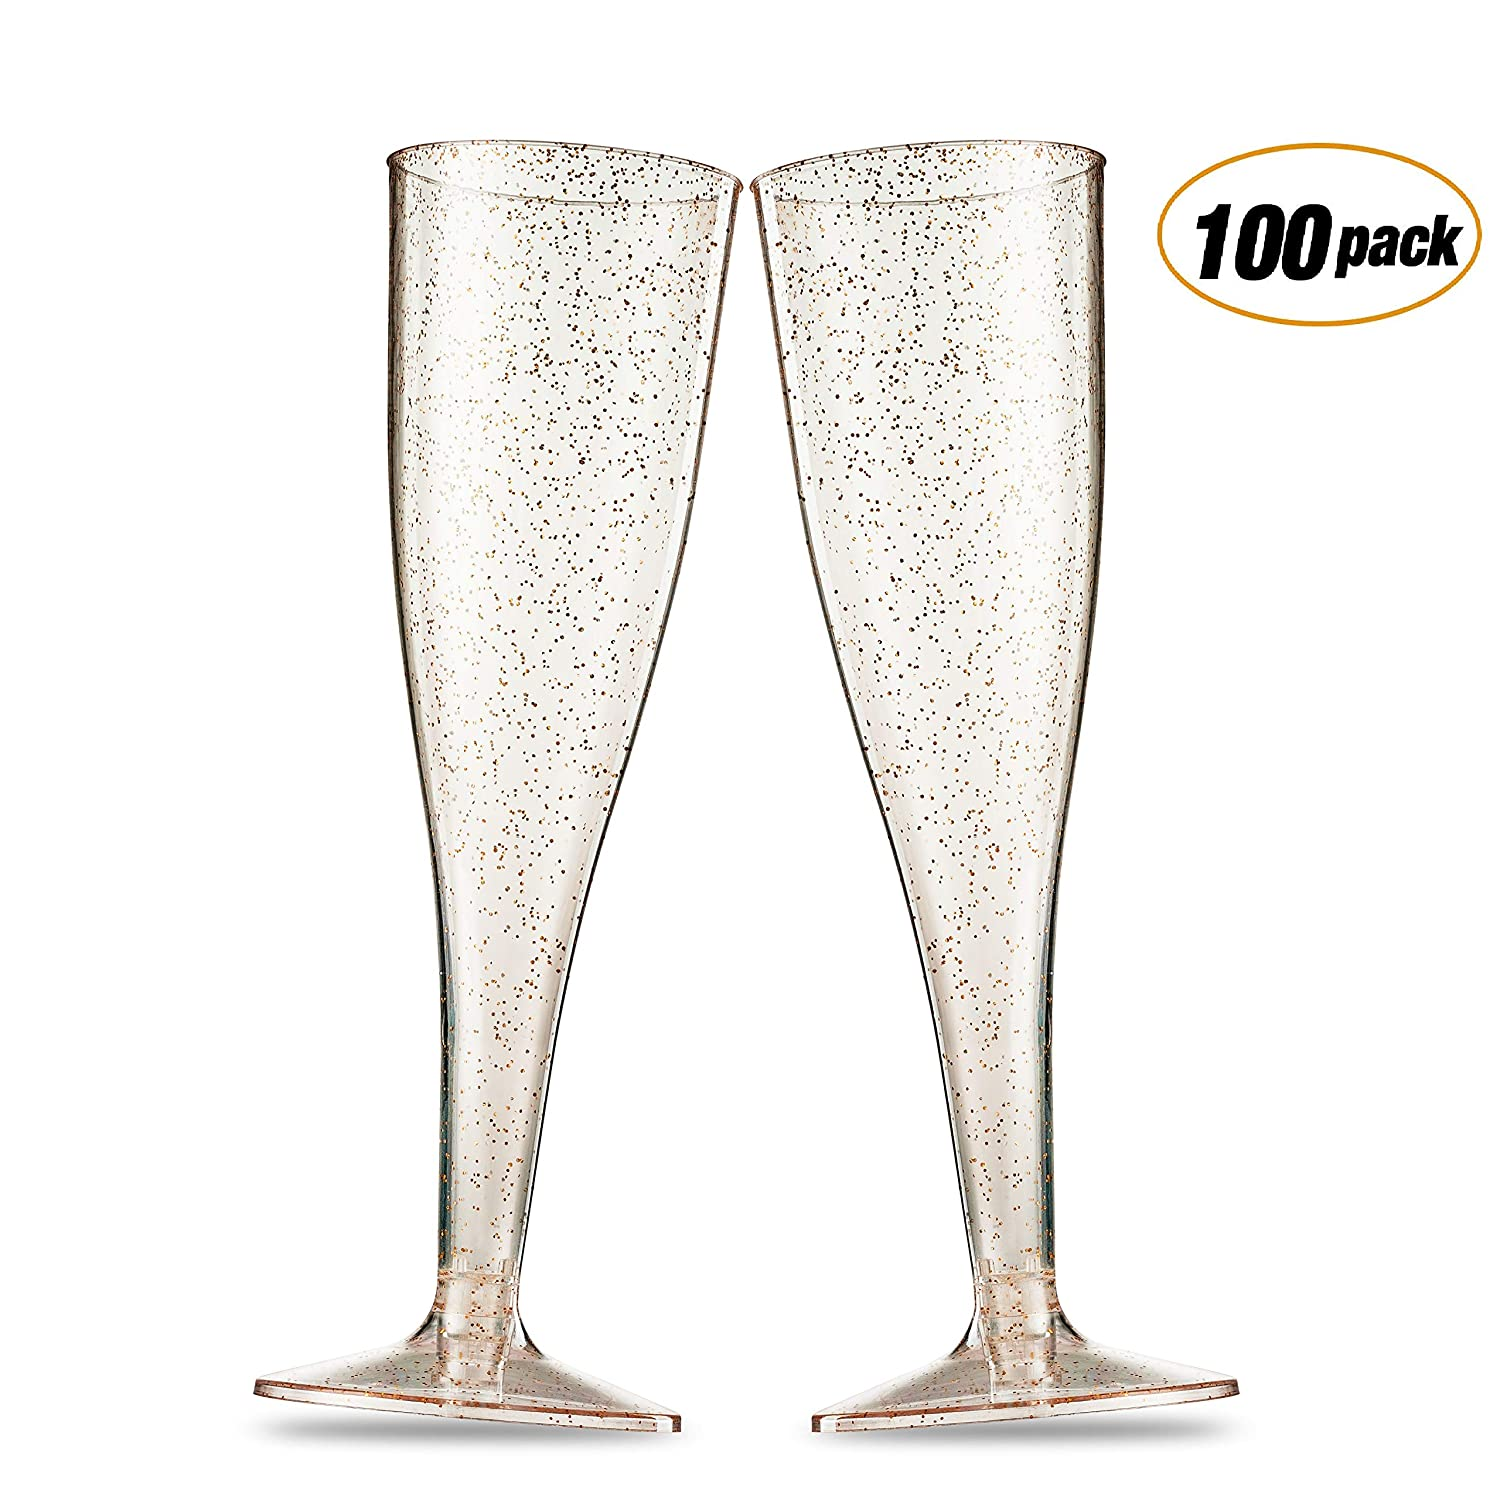 100 Gold Glitter Plastic Champagne Flutes ~ 5 Oz Clear Plastic Toasting Glasses ~ Disposable Wedding Party Cocktail Cups Munfix MF5100GG